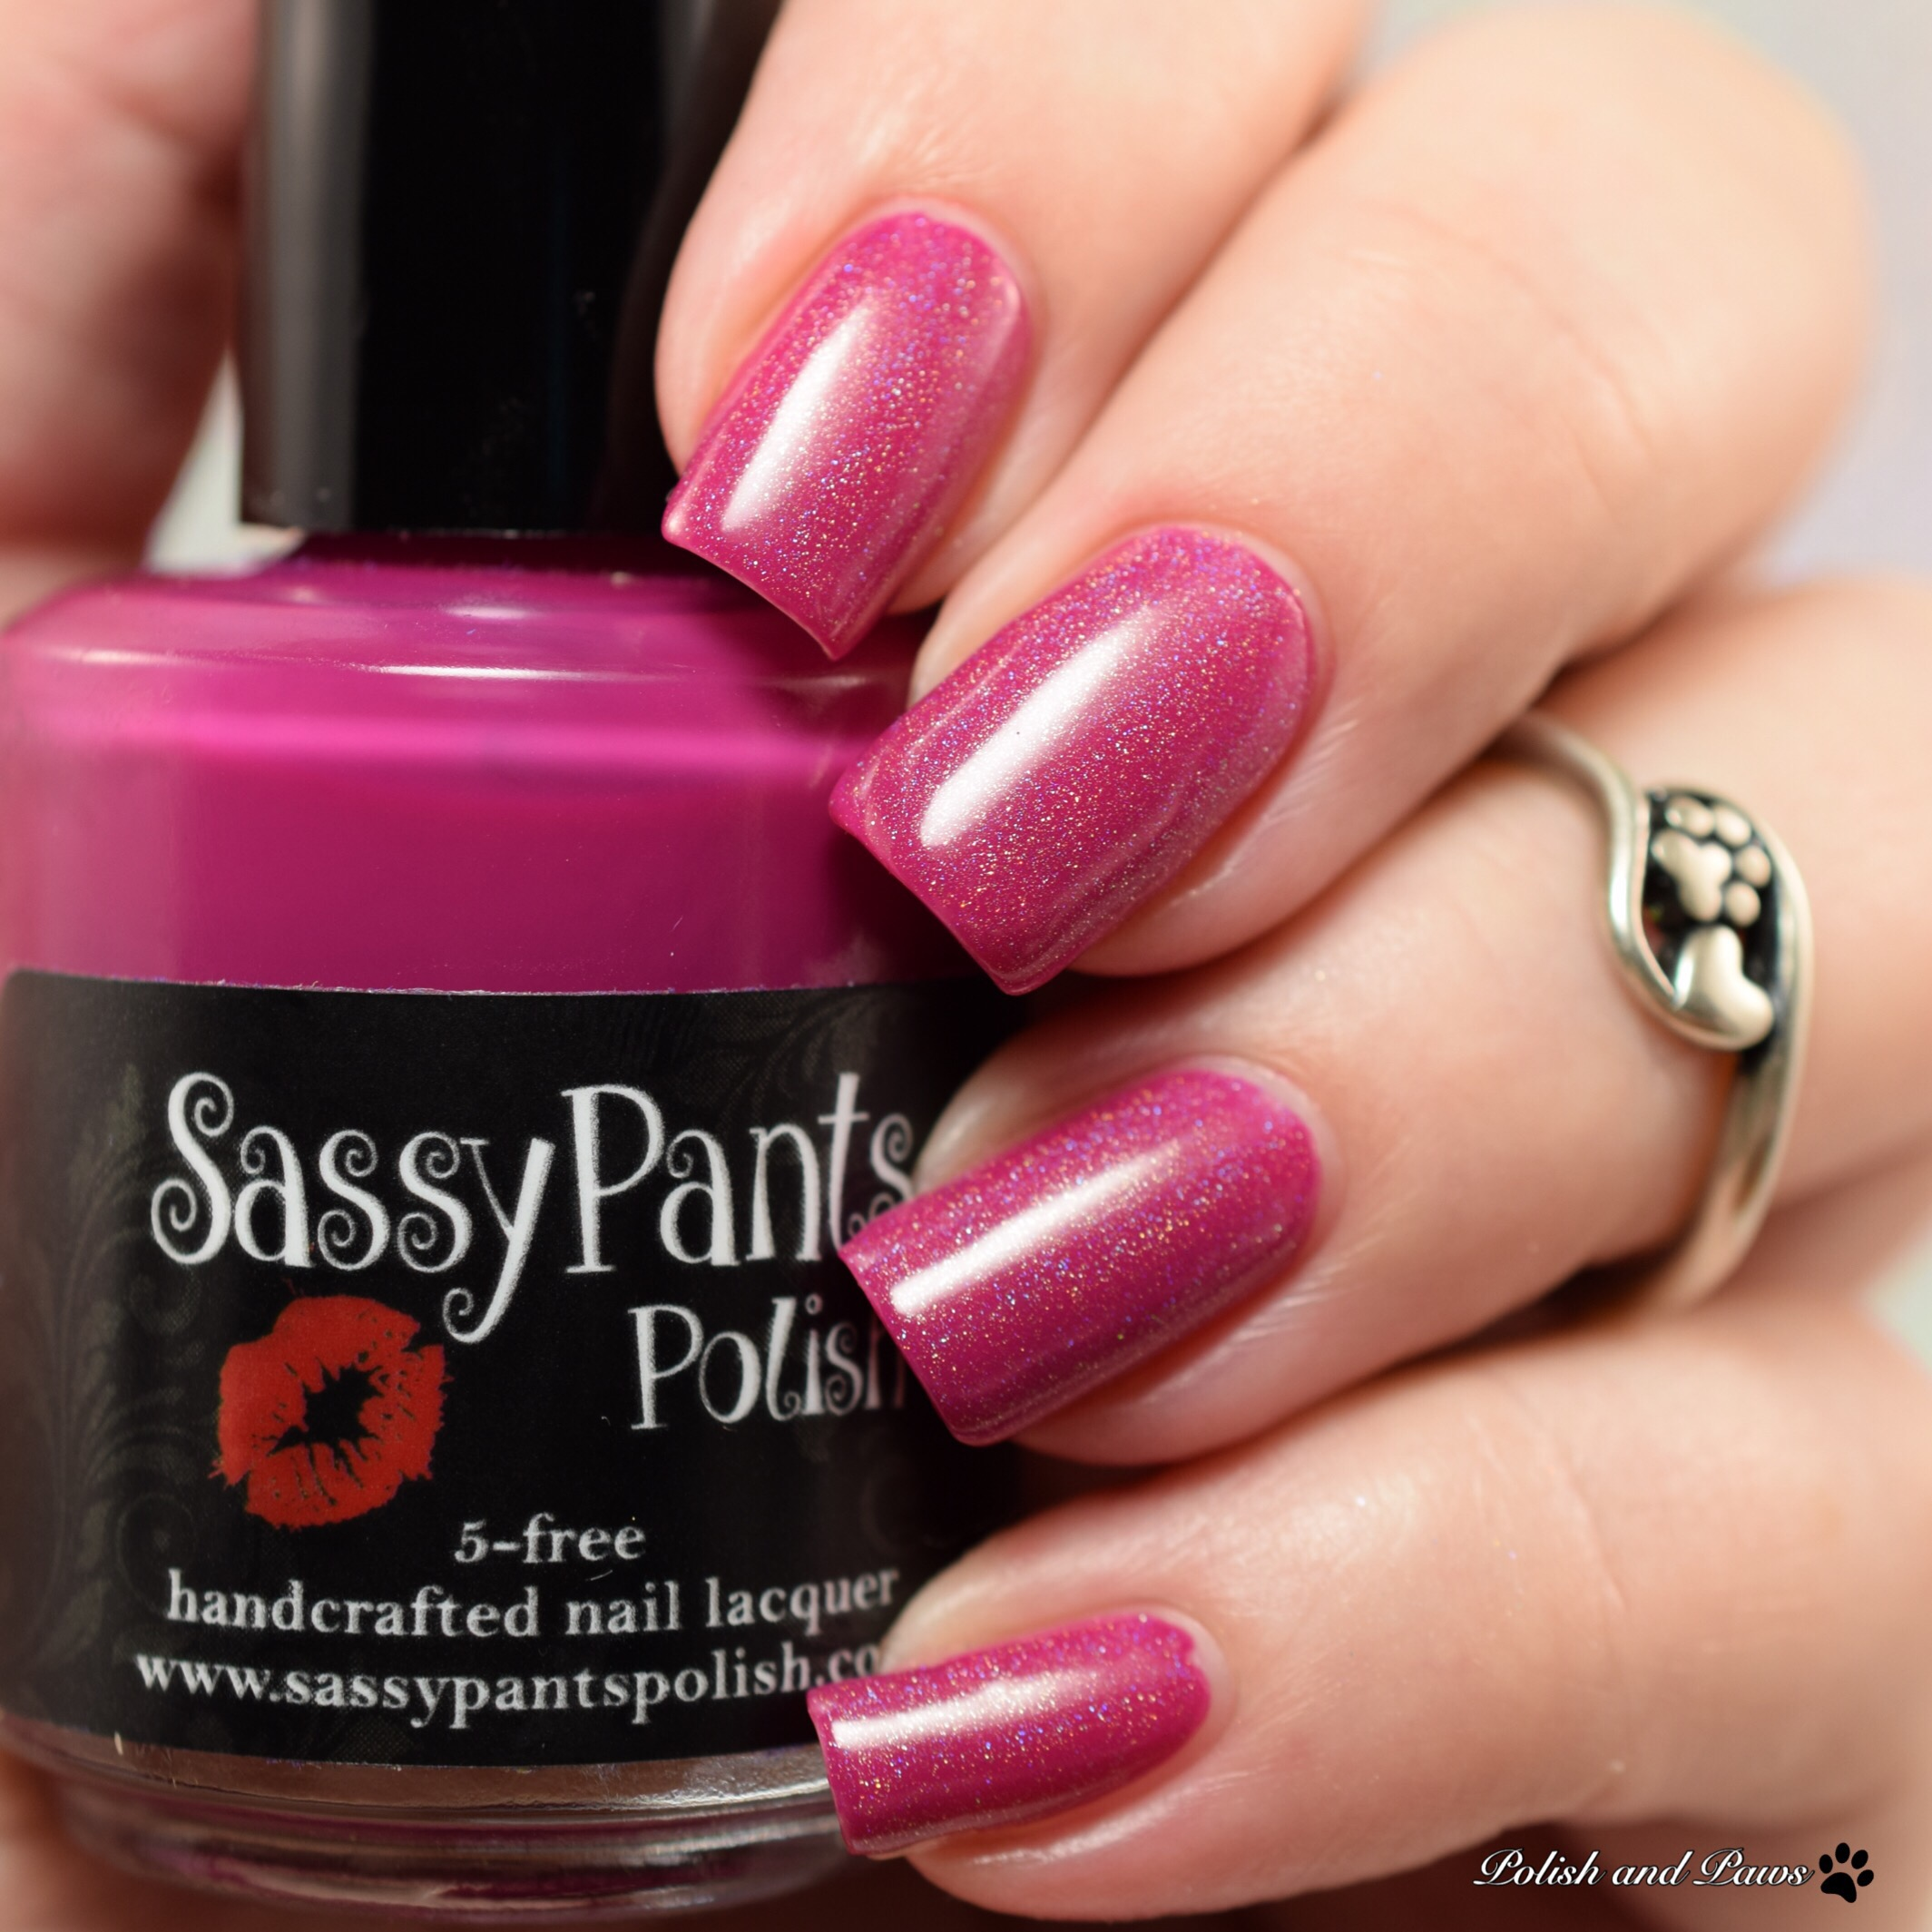 Sassy Pants Polish Love Always layered over Kiss & Make Up